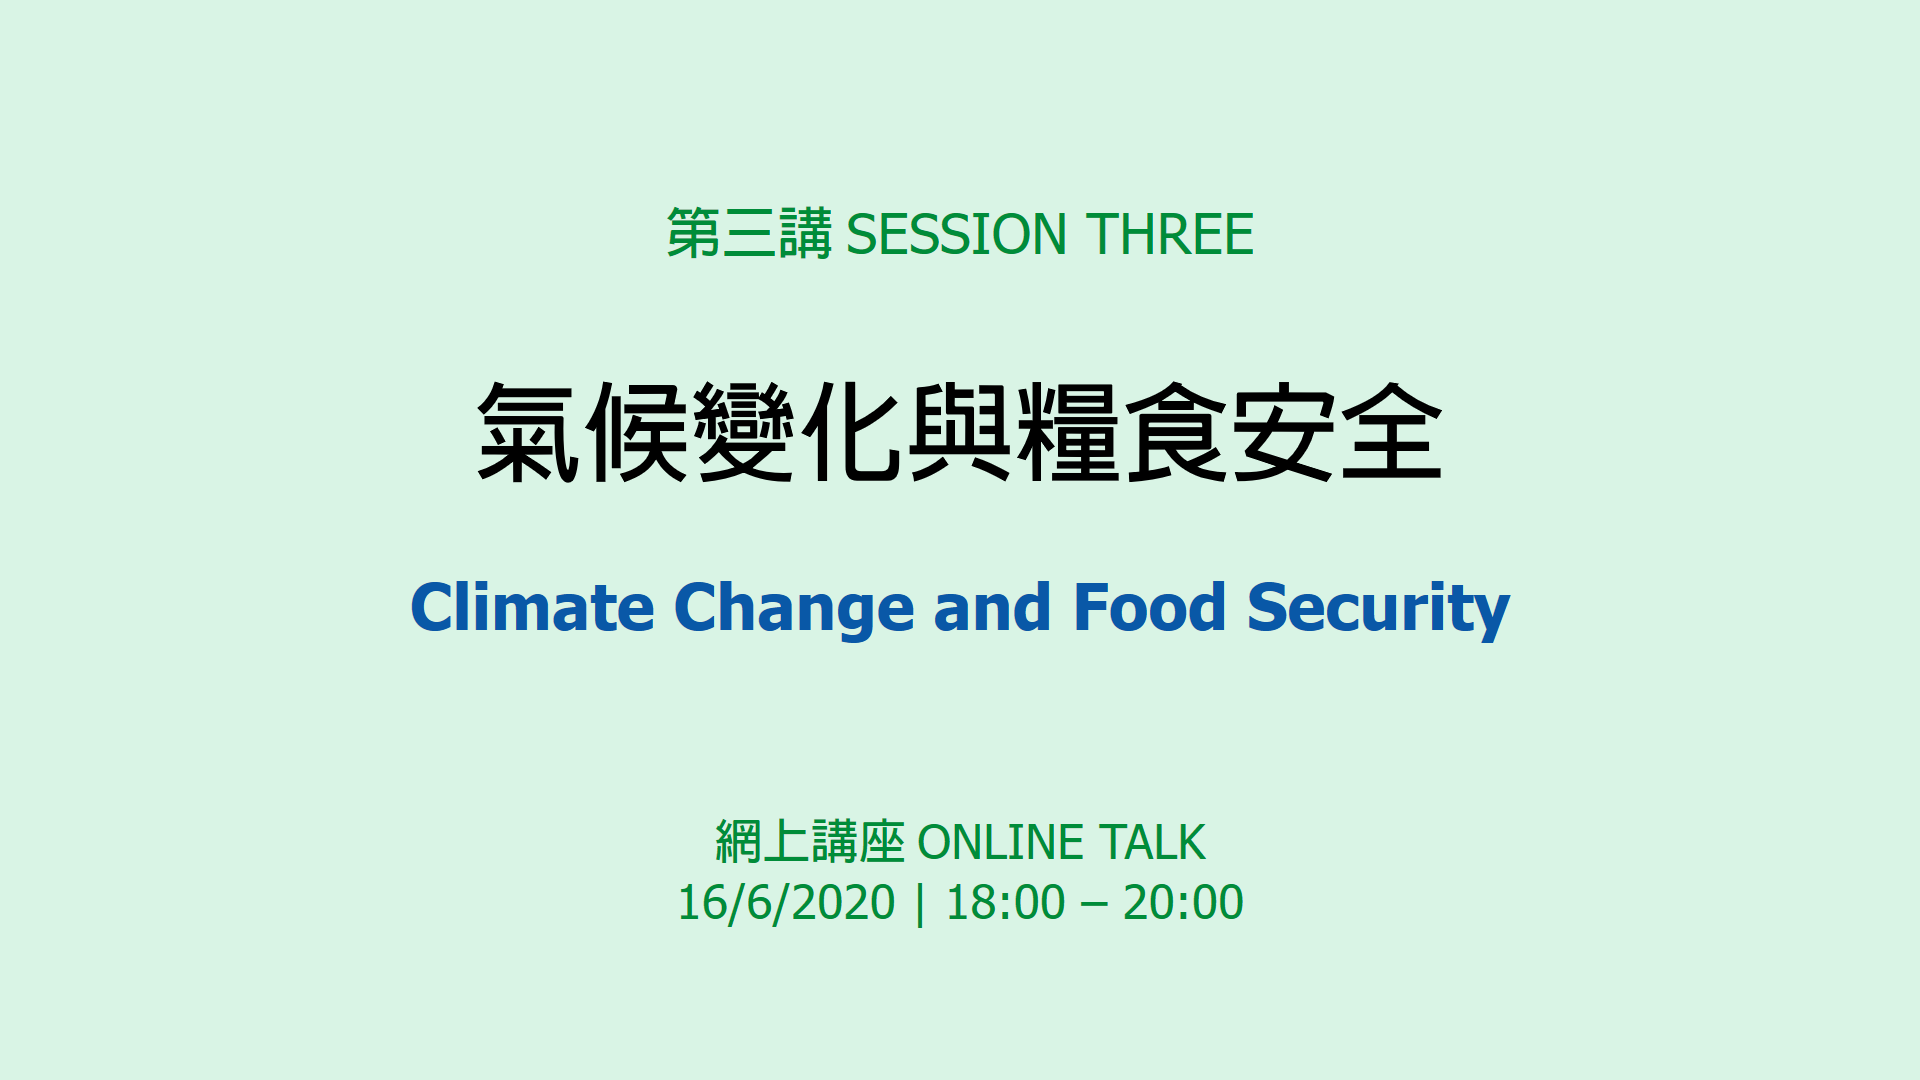 SDSNHK X GE SDG Forum 202006 session 3 Web Banner v1